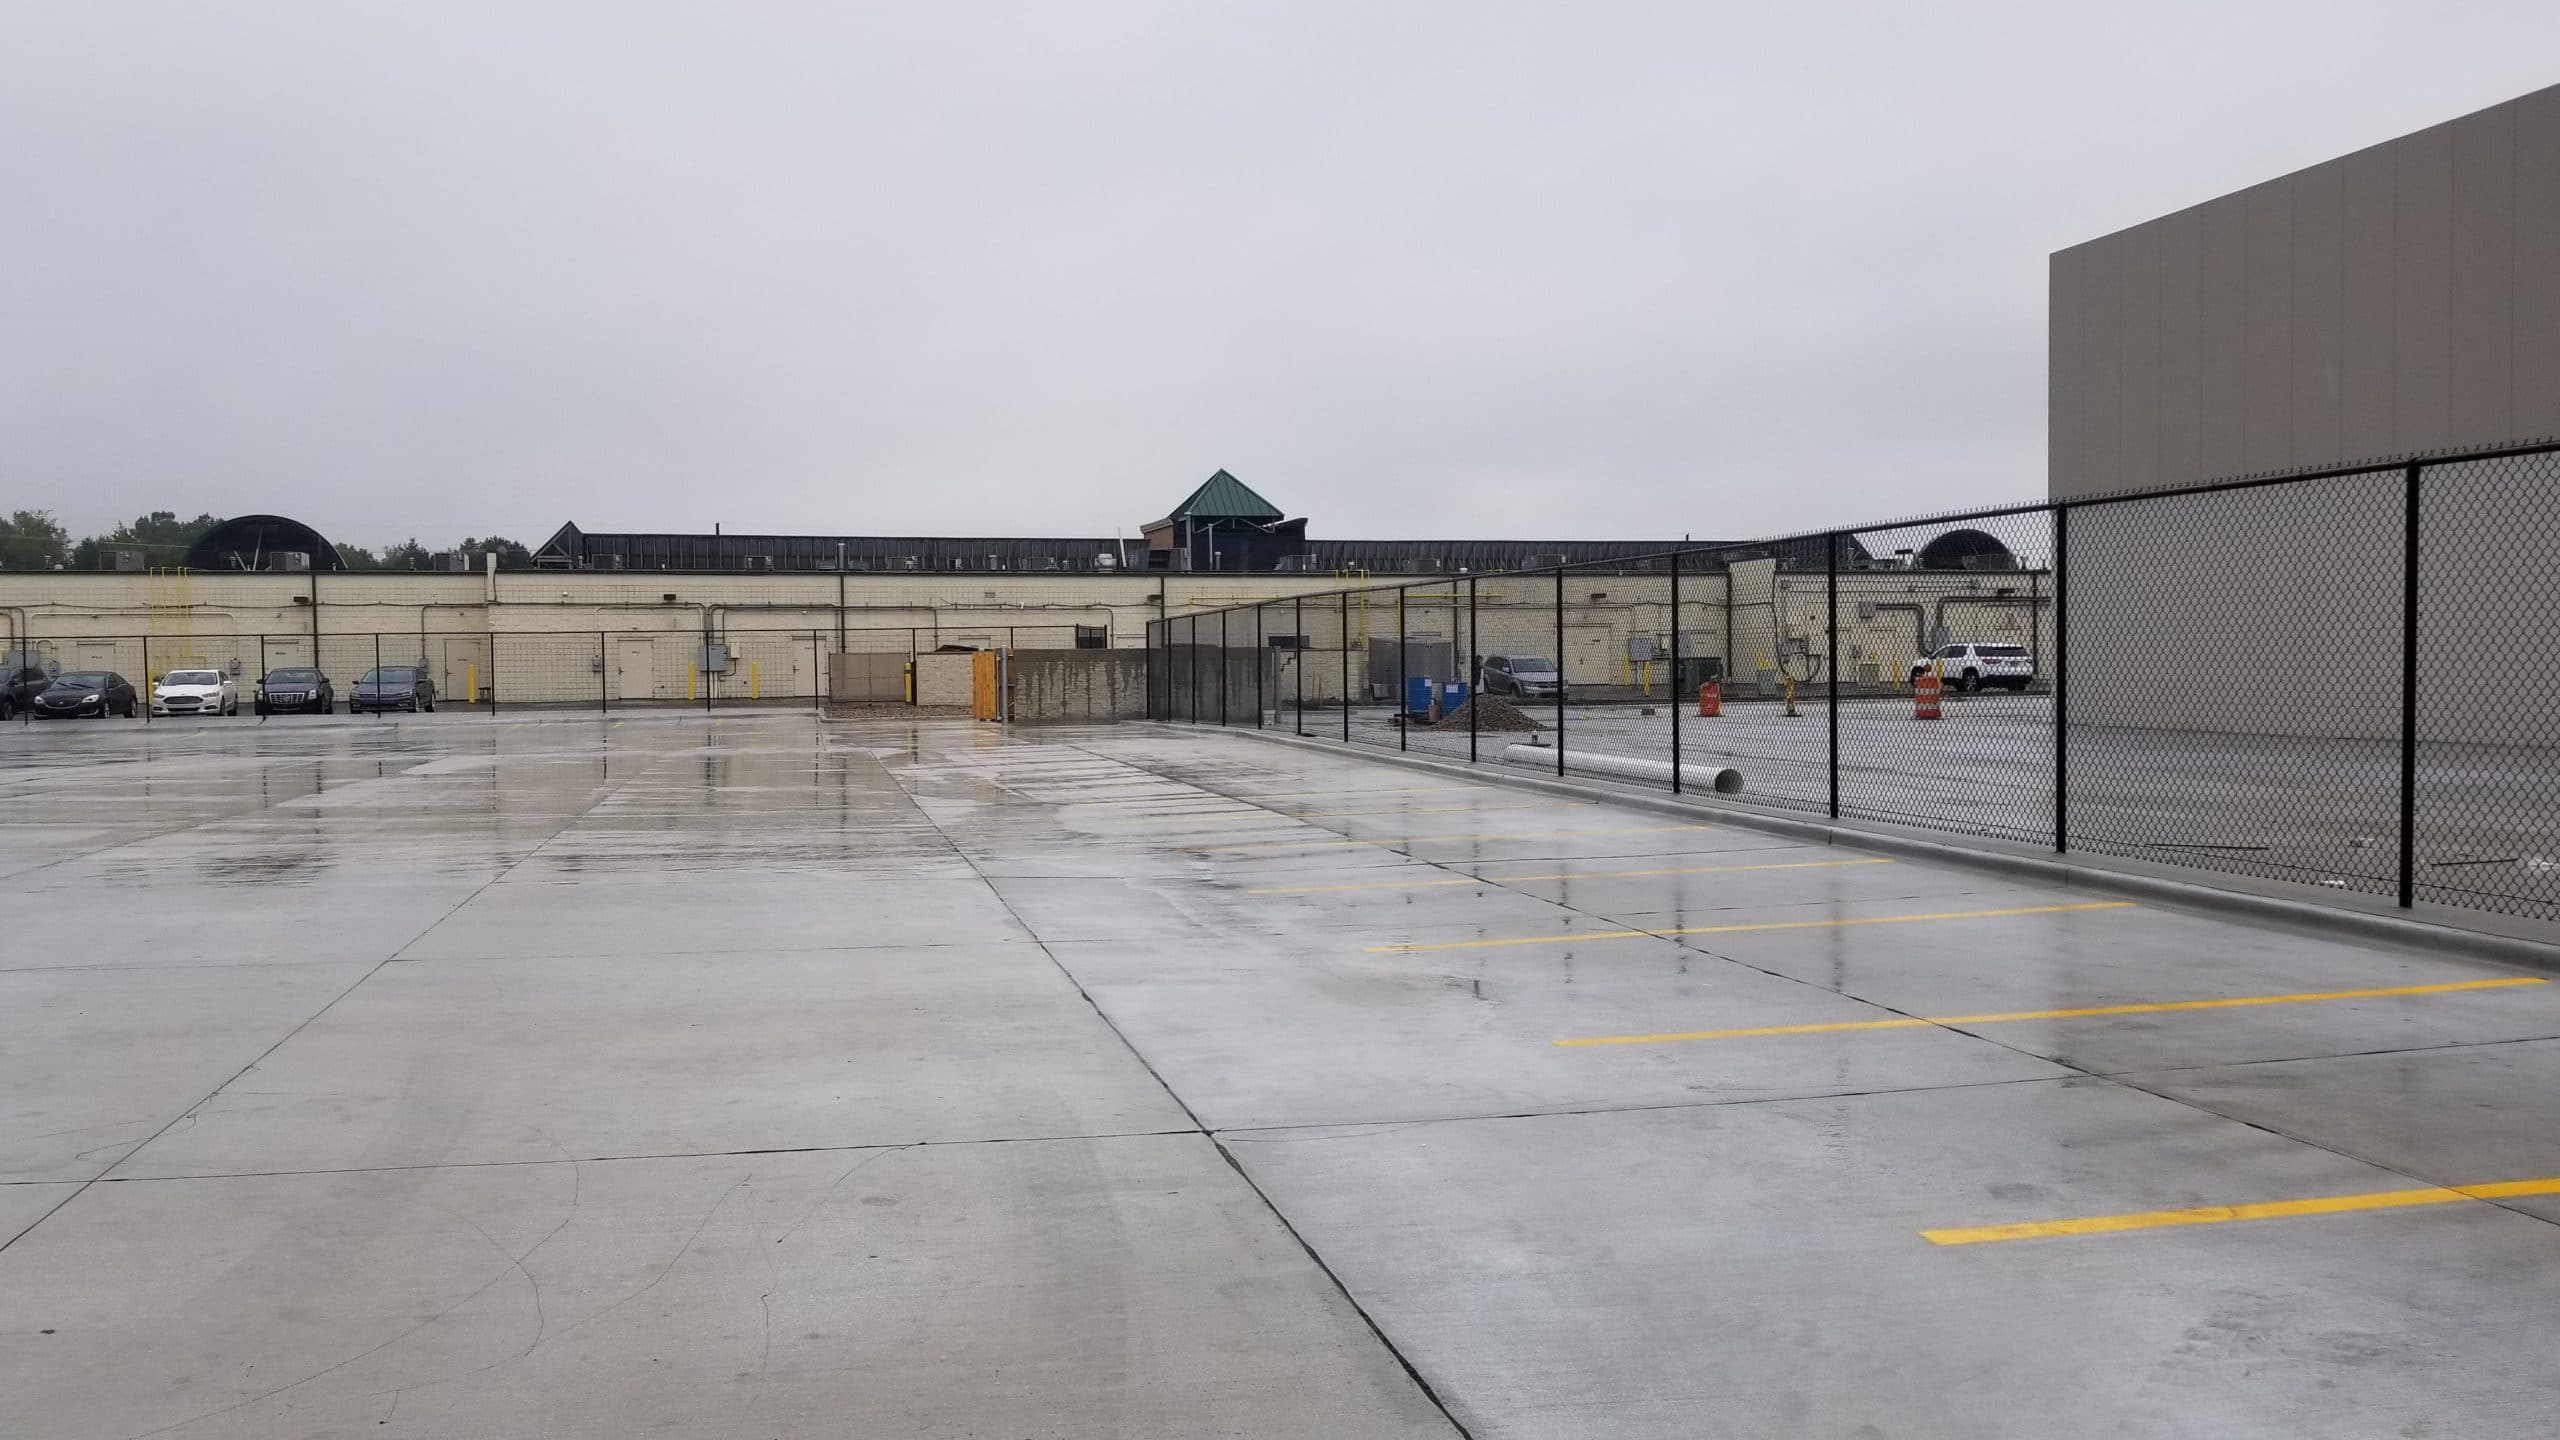 Image of commercial chain link fencing and gates at the Van der Graaf